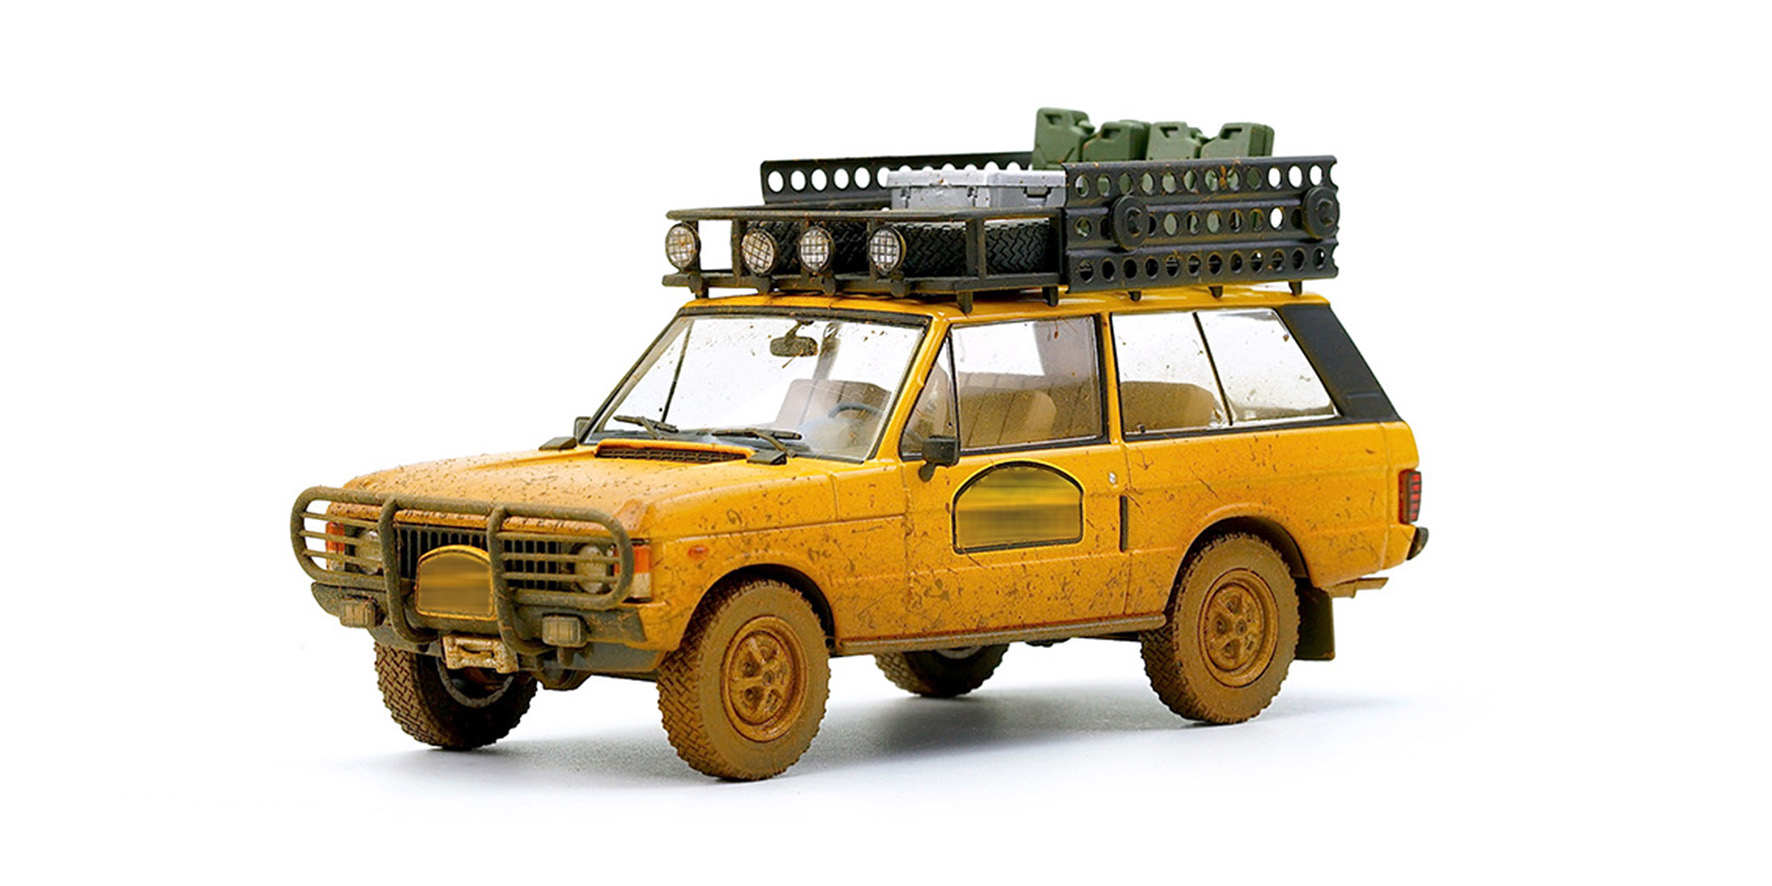 Range Rover Camel Trophy Papua New Guinea 1982 Dirty version - 1:43